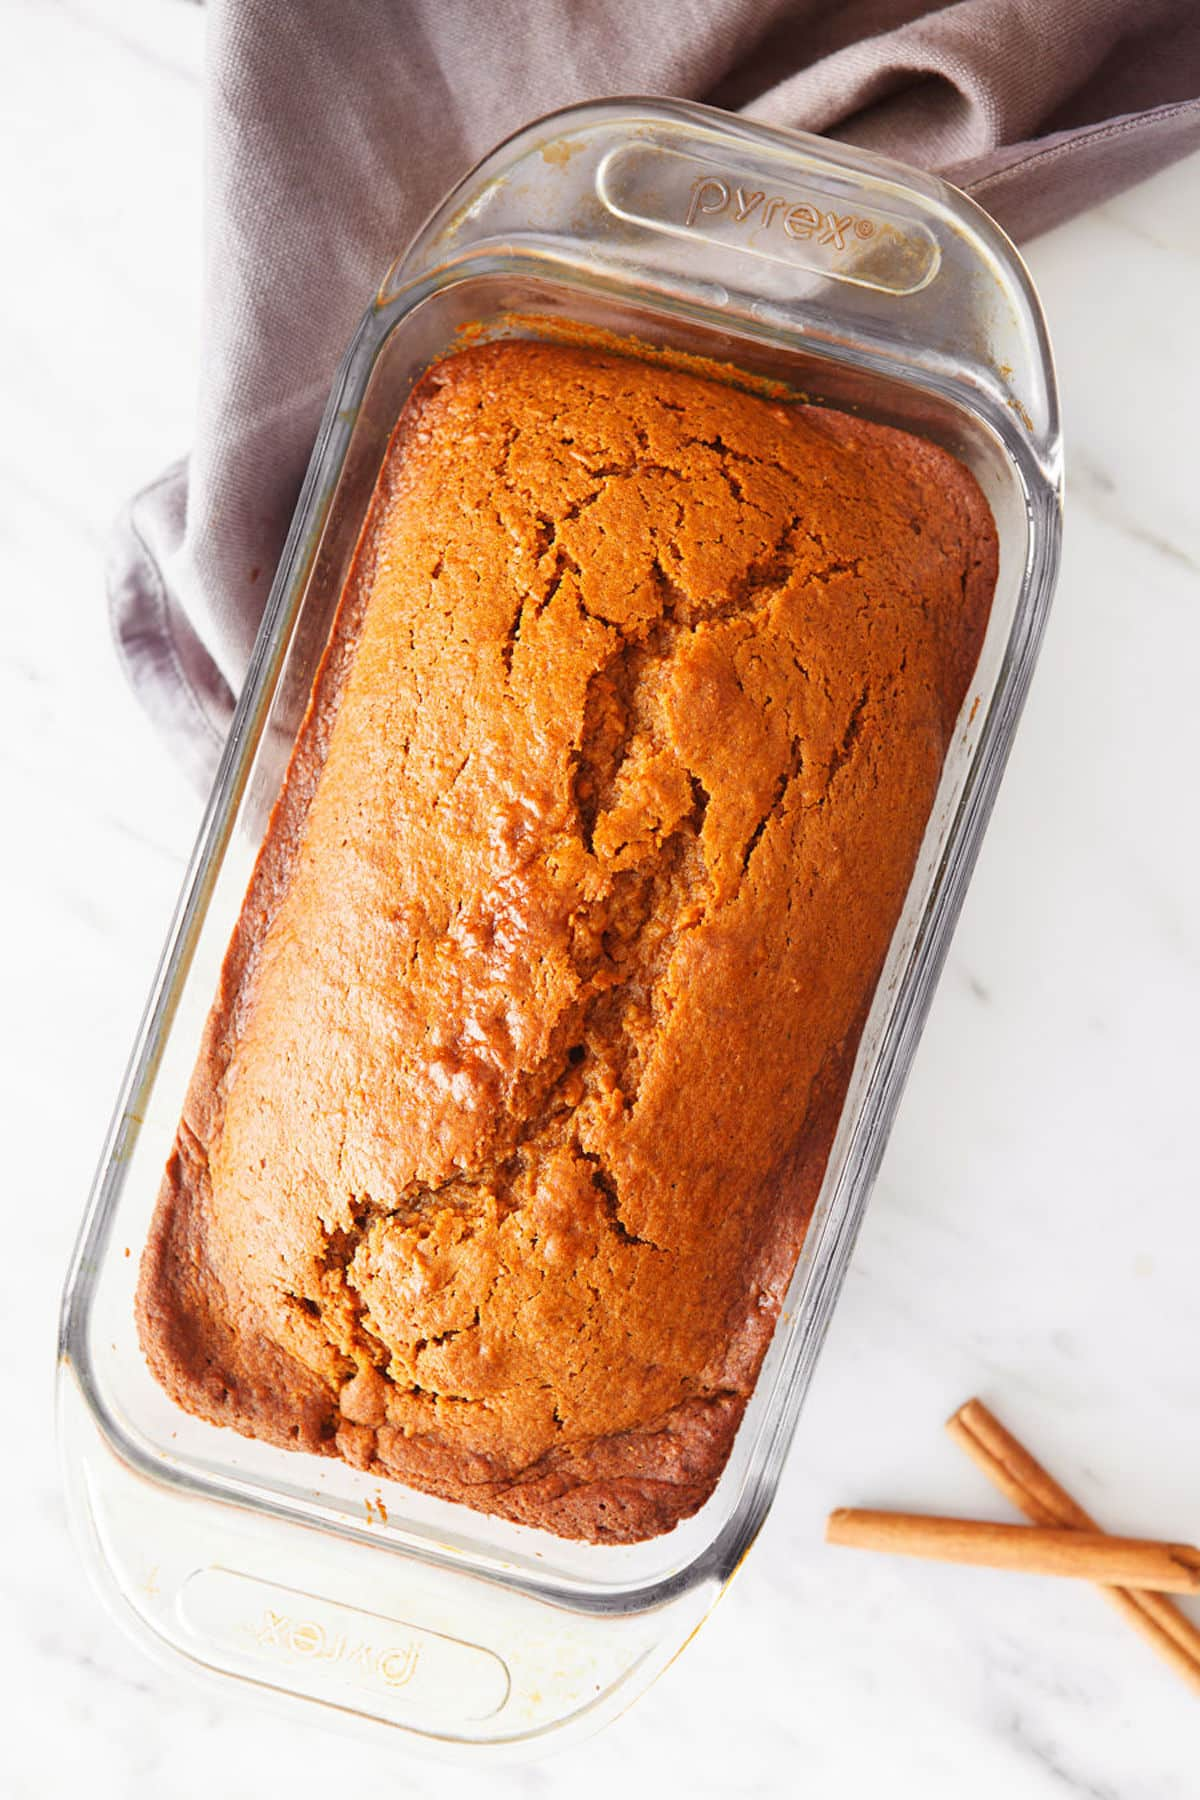 baking dish with cooked sweet potato bread